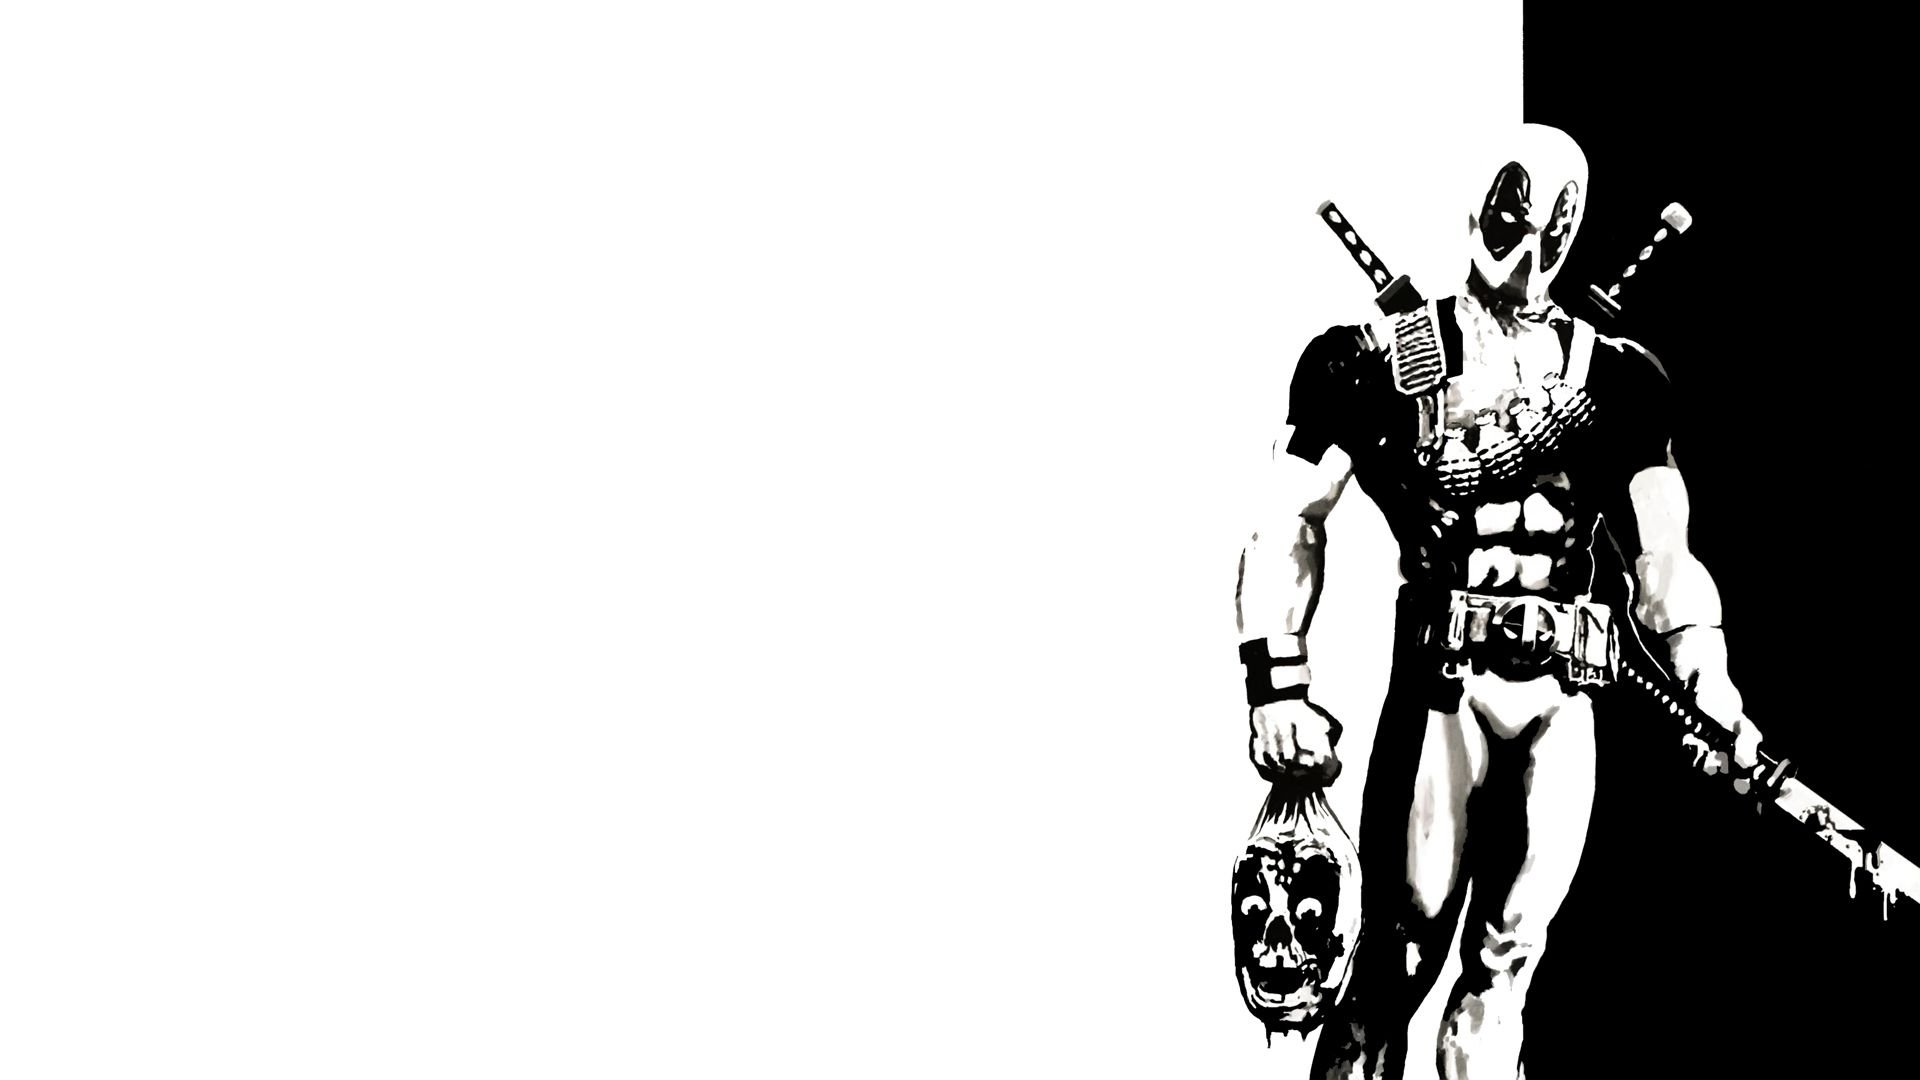 Deadpool Black And White Wallpapers Top Free Deadpool Black And White Backgrounds Wallpaperaccess